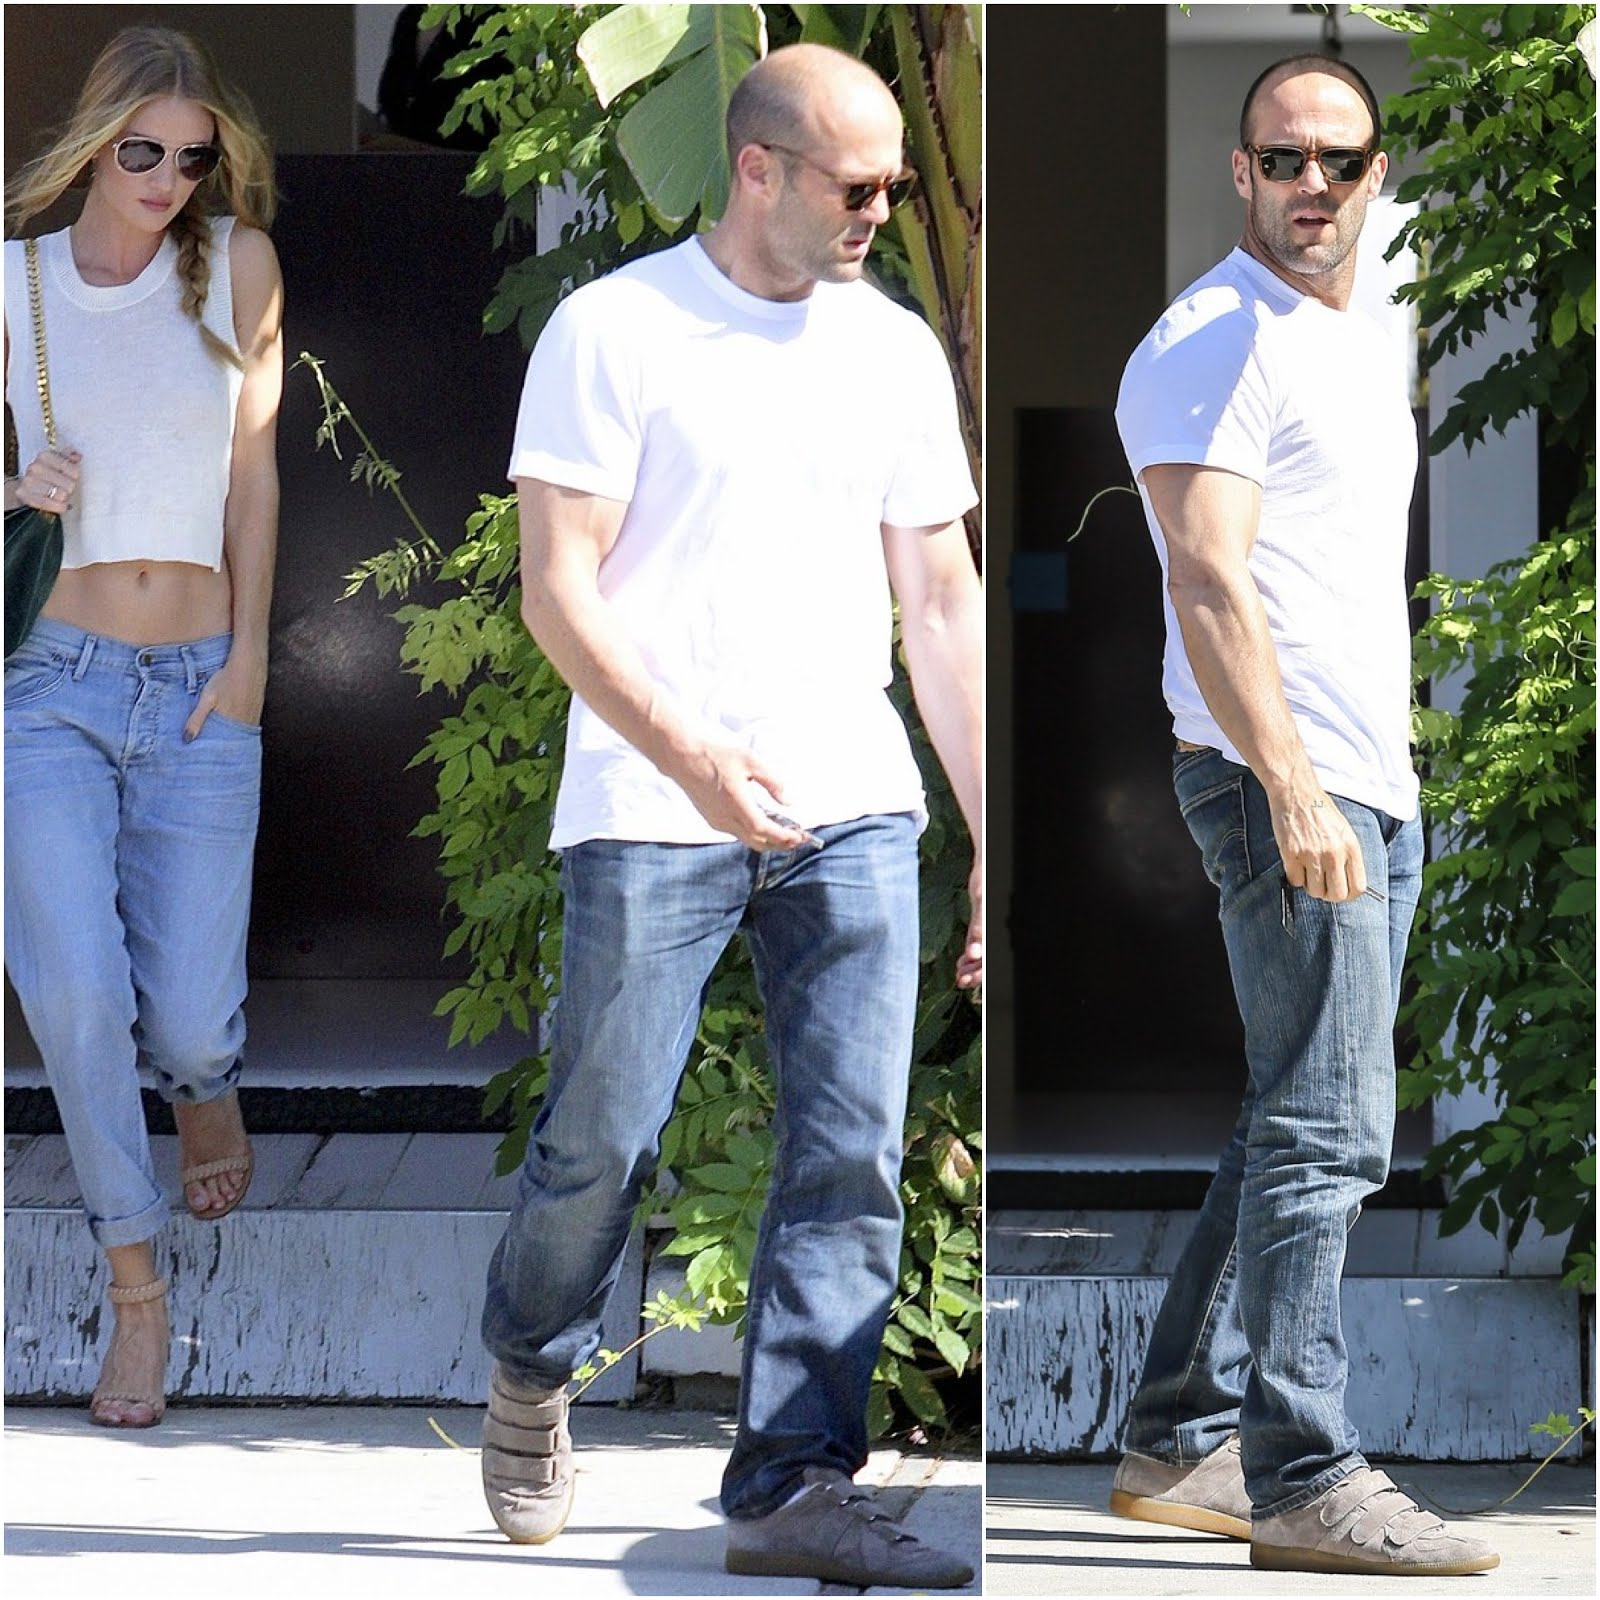 00O00 Menswear Blog London Celebrity Style Jason Statham Rosie Huntington Whiteley Hollywood Margiela sneakers